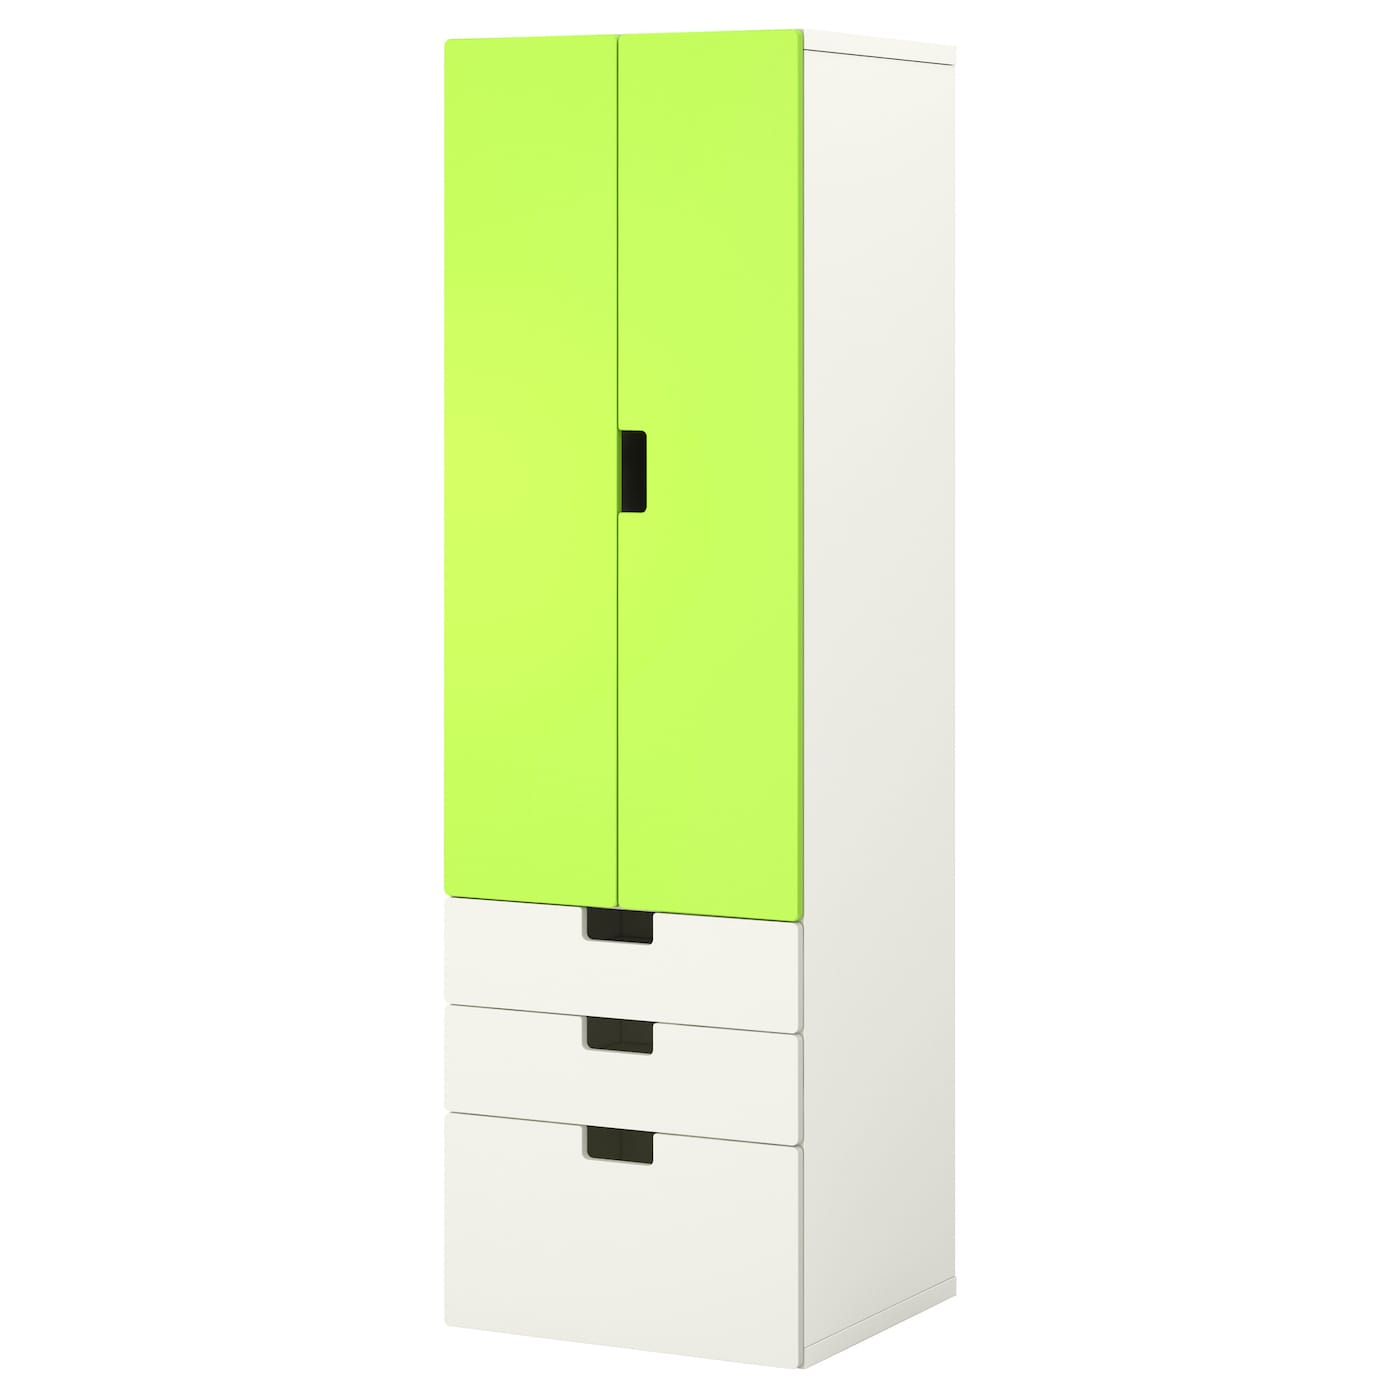 stuva storage combination w doors drawers white green 60x50x192 cm ikea. Black Bedroom Furniture Sets. Home Design Ideas